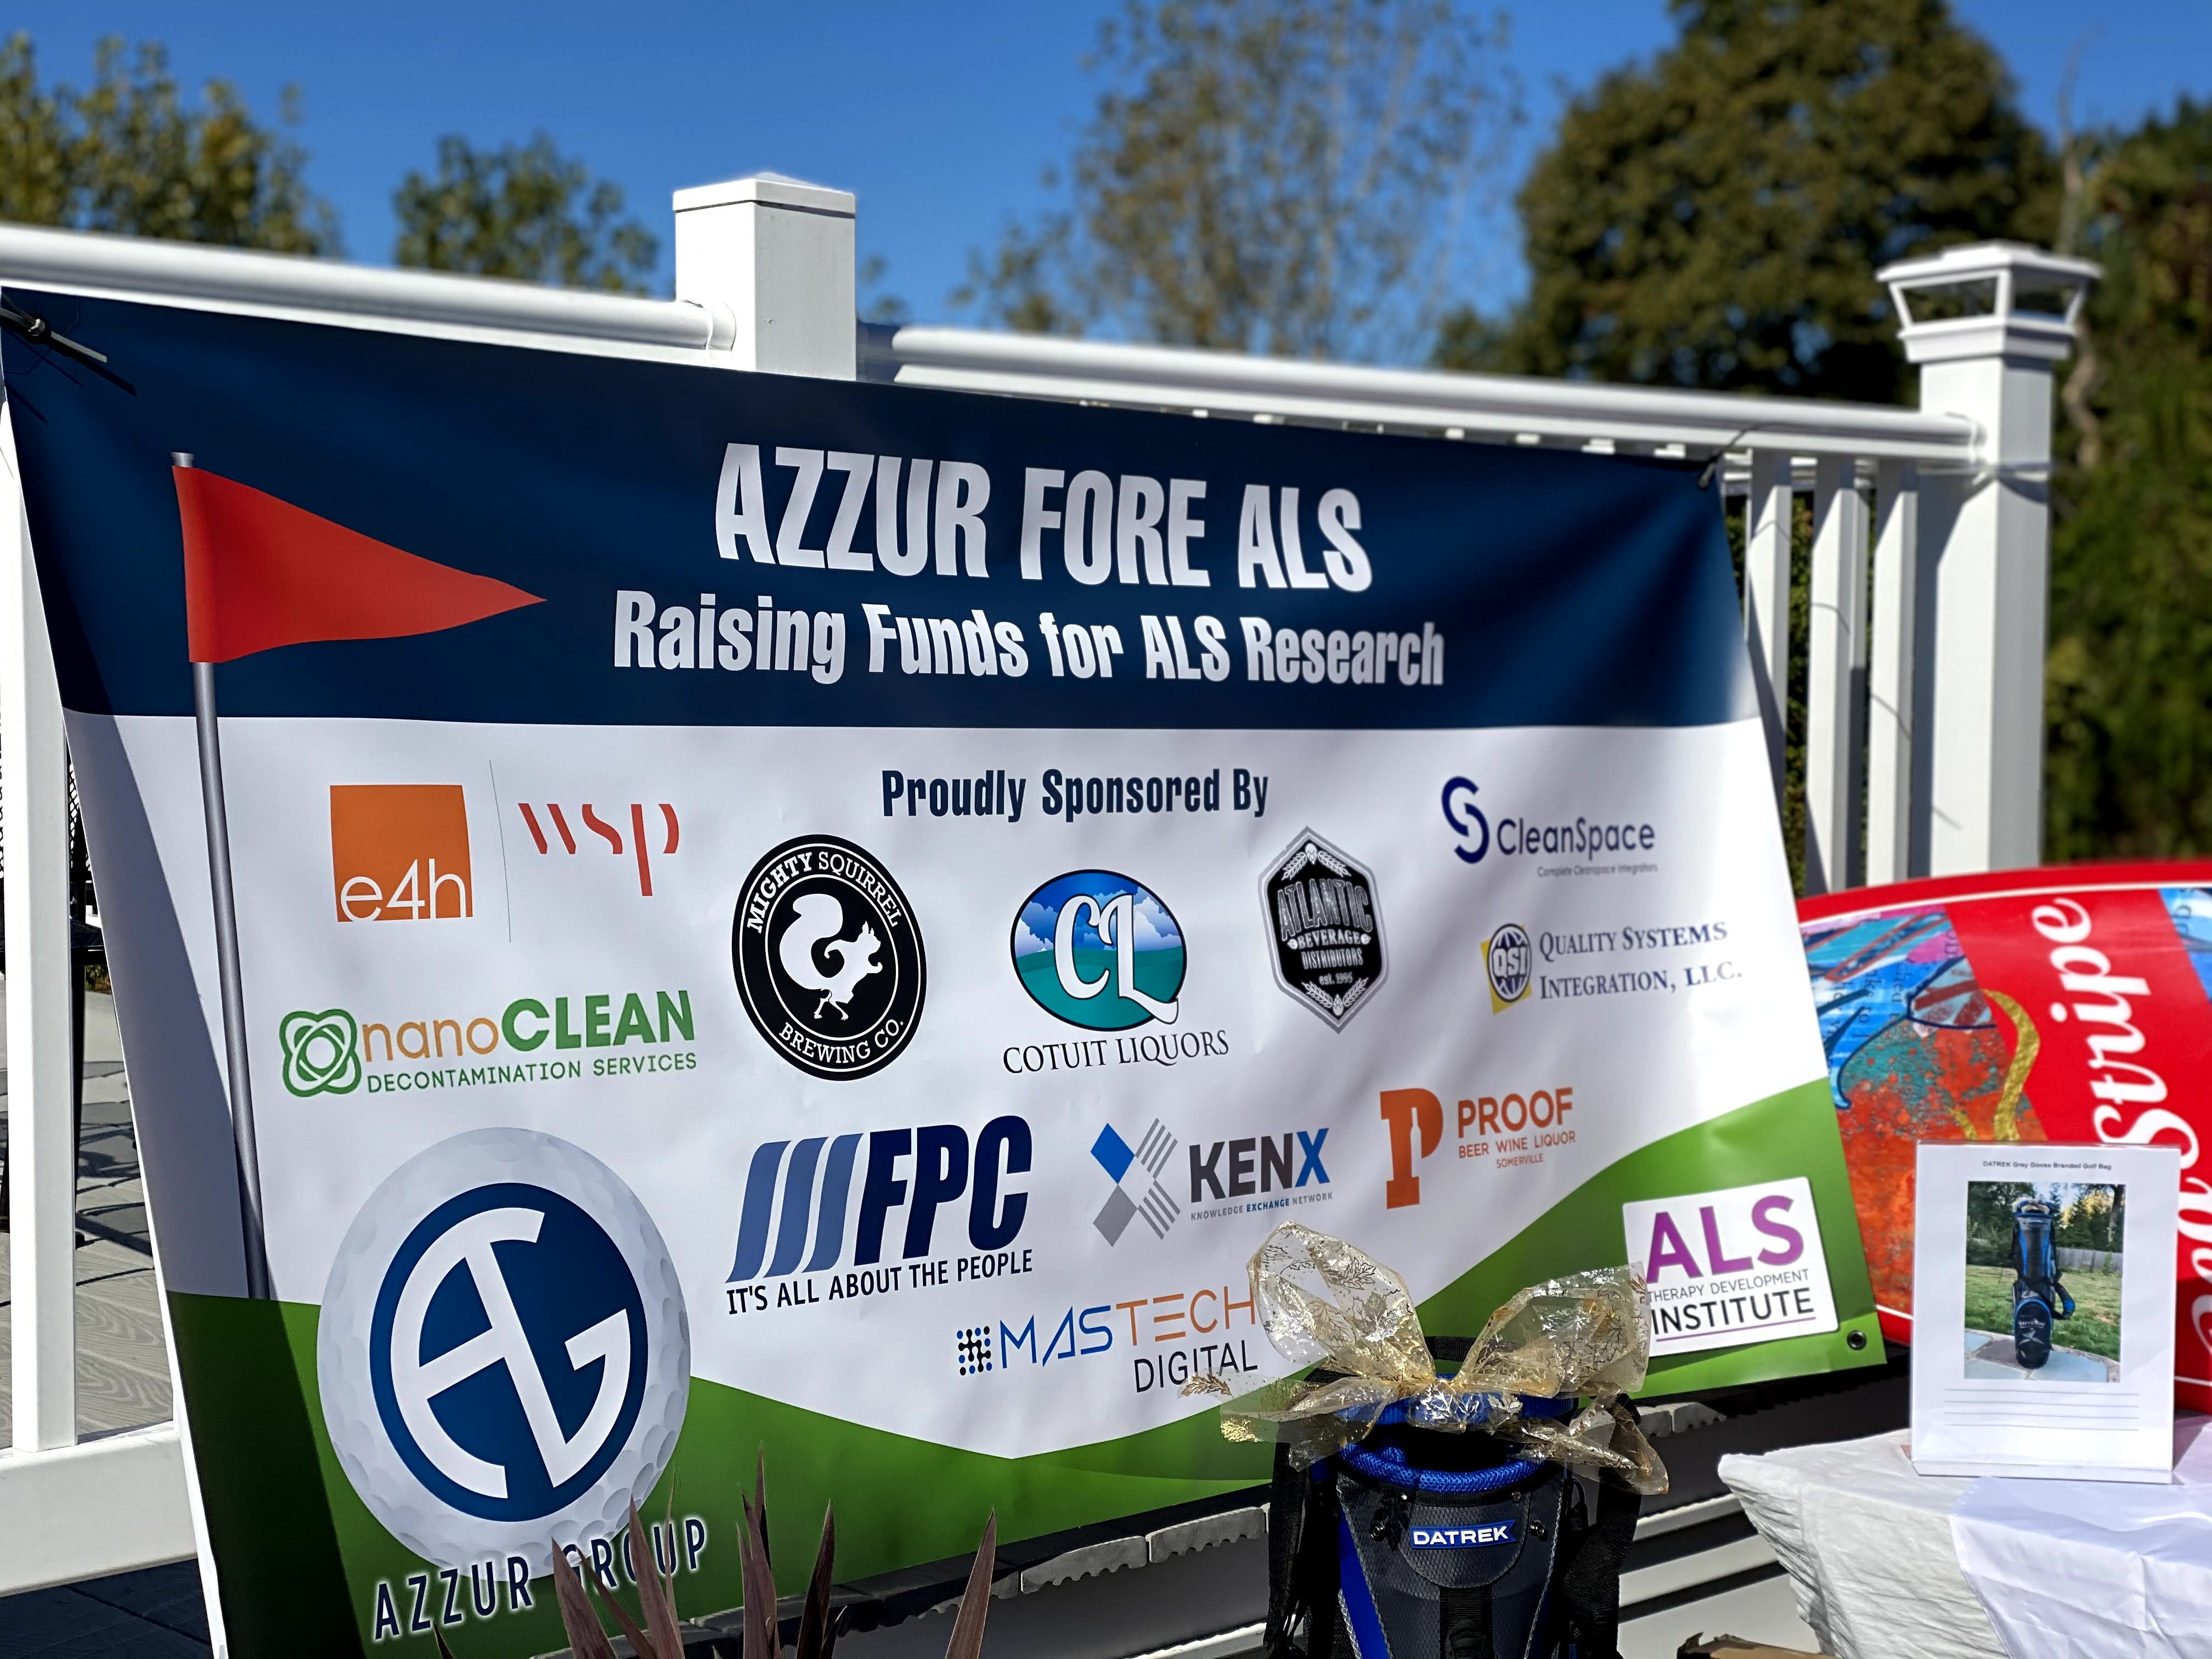 Azzur Fore ALS Scores Big for ALS Therapy Development Institute Teaser